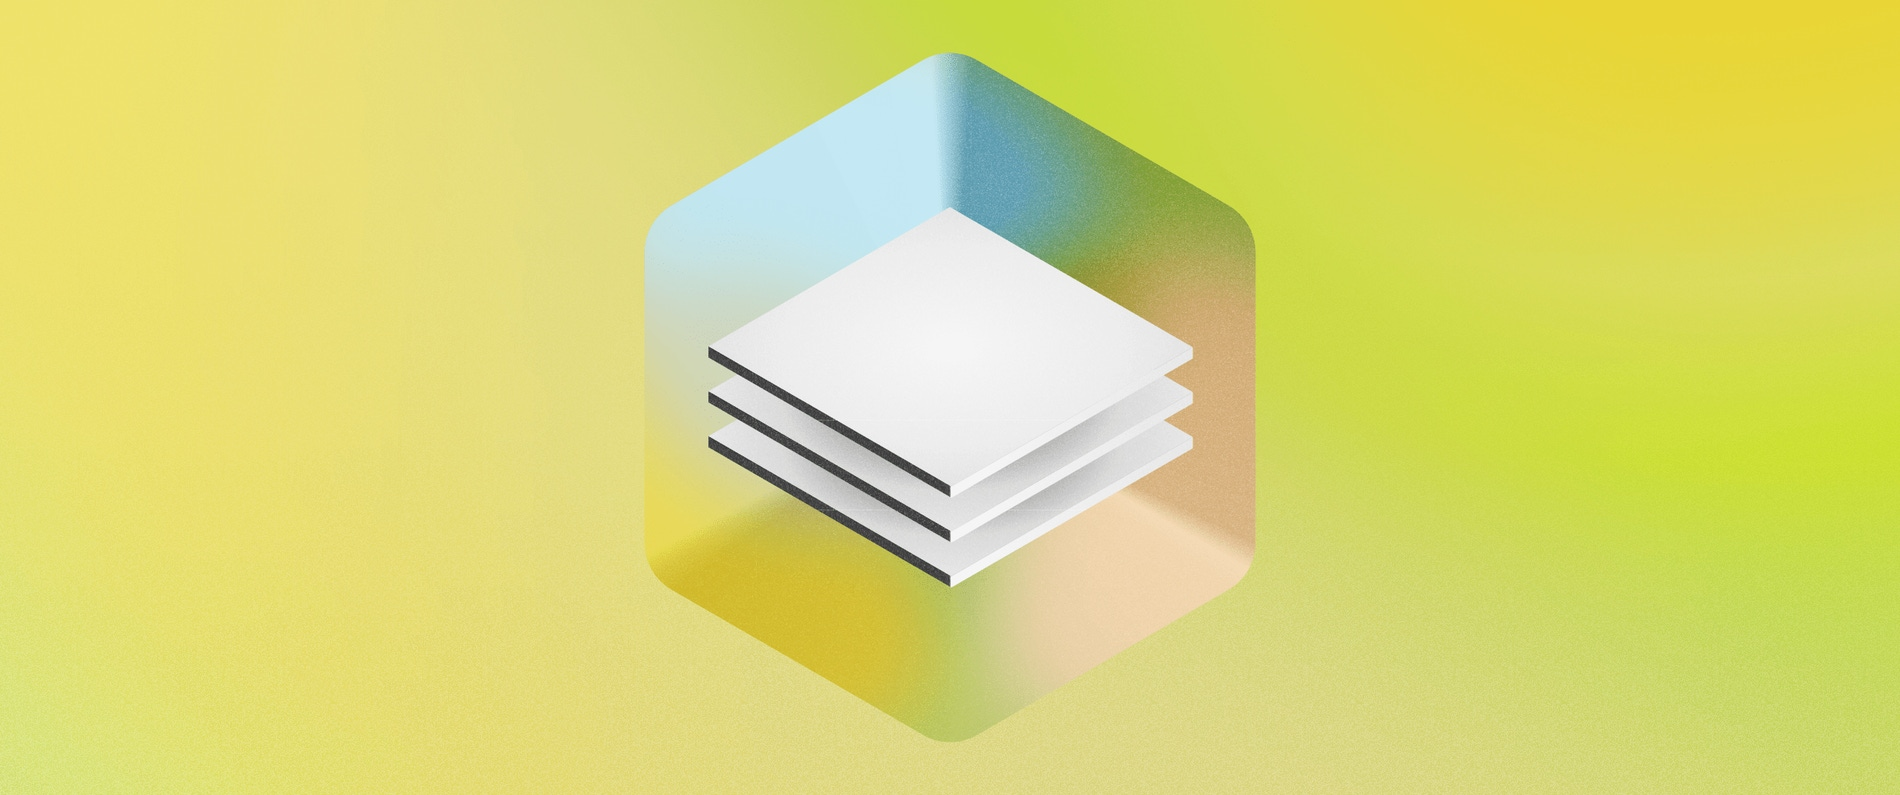 A conceptual illustration showing a 3D version of Sketch's Data icon floating in a box, on a green background